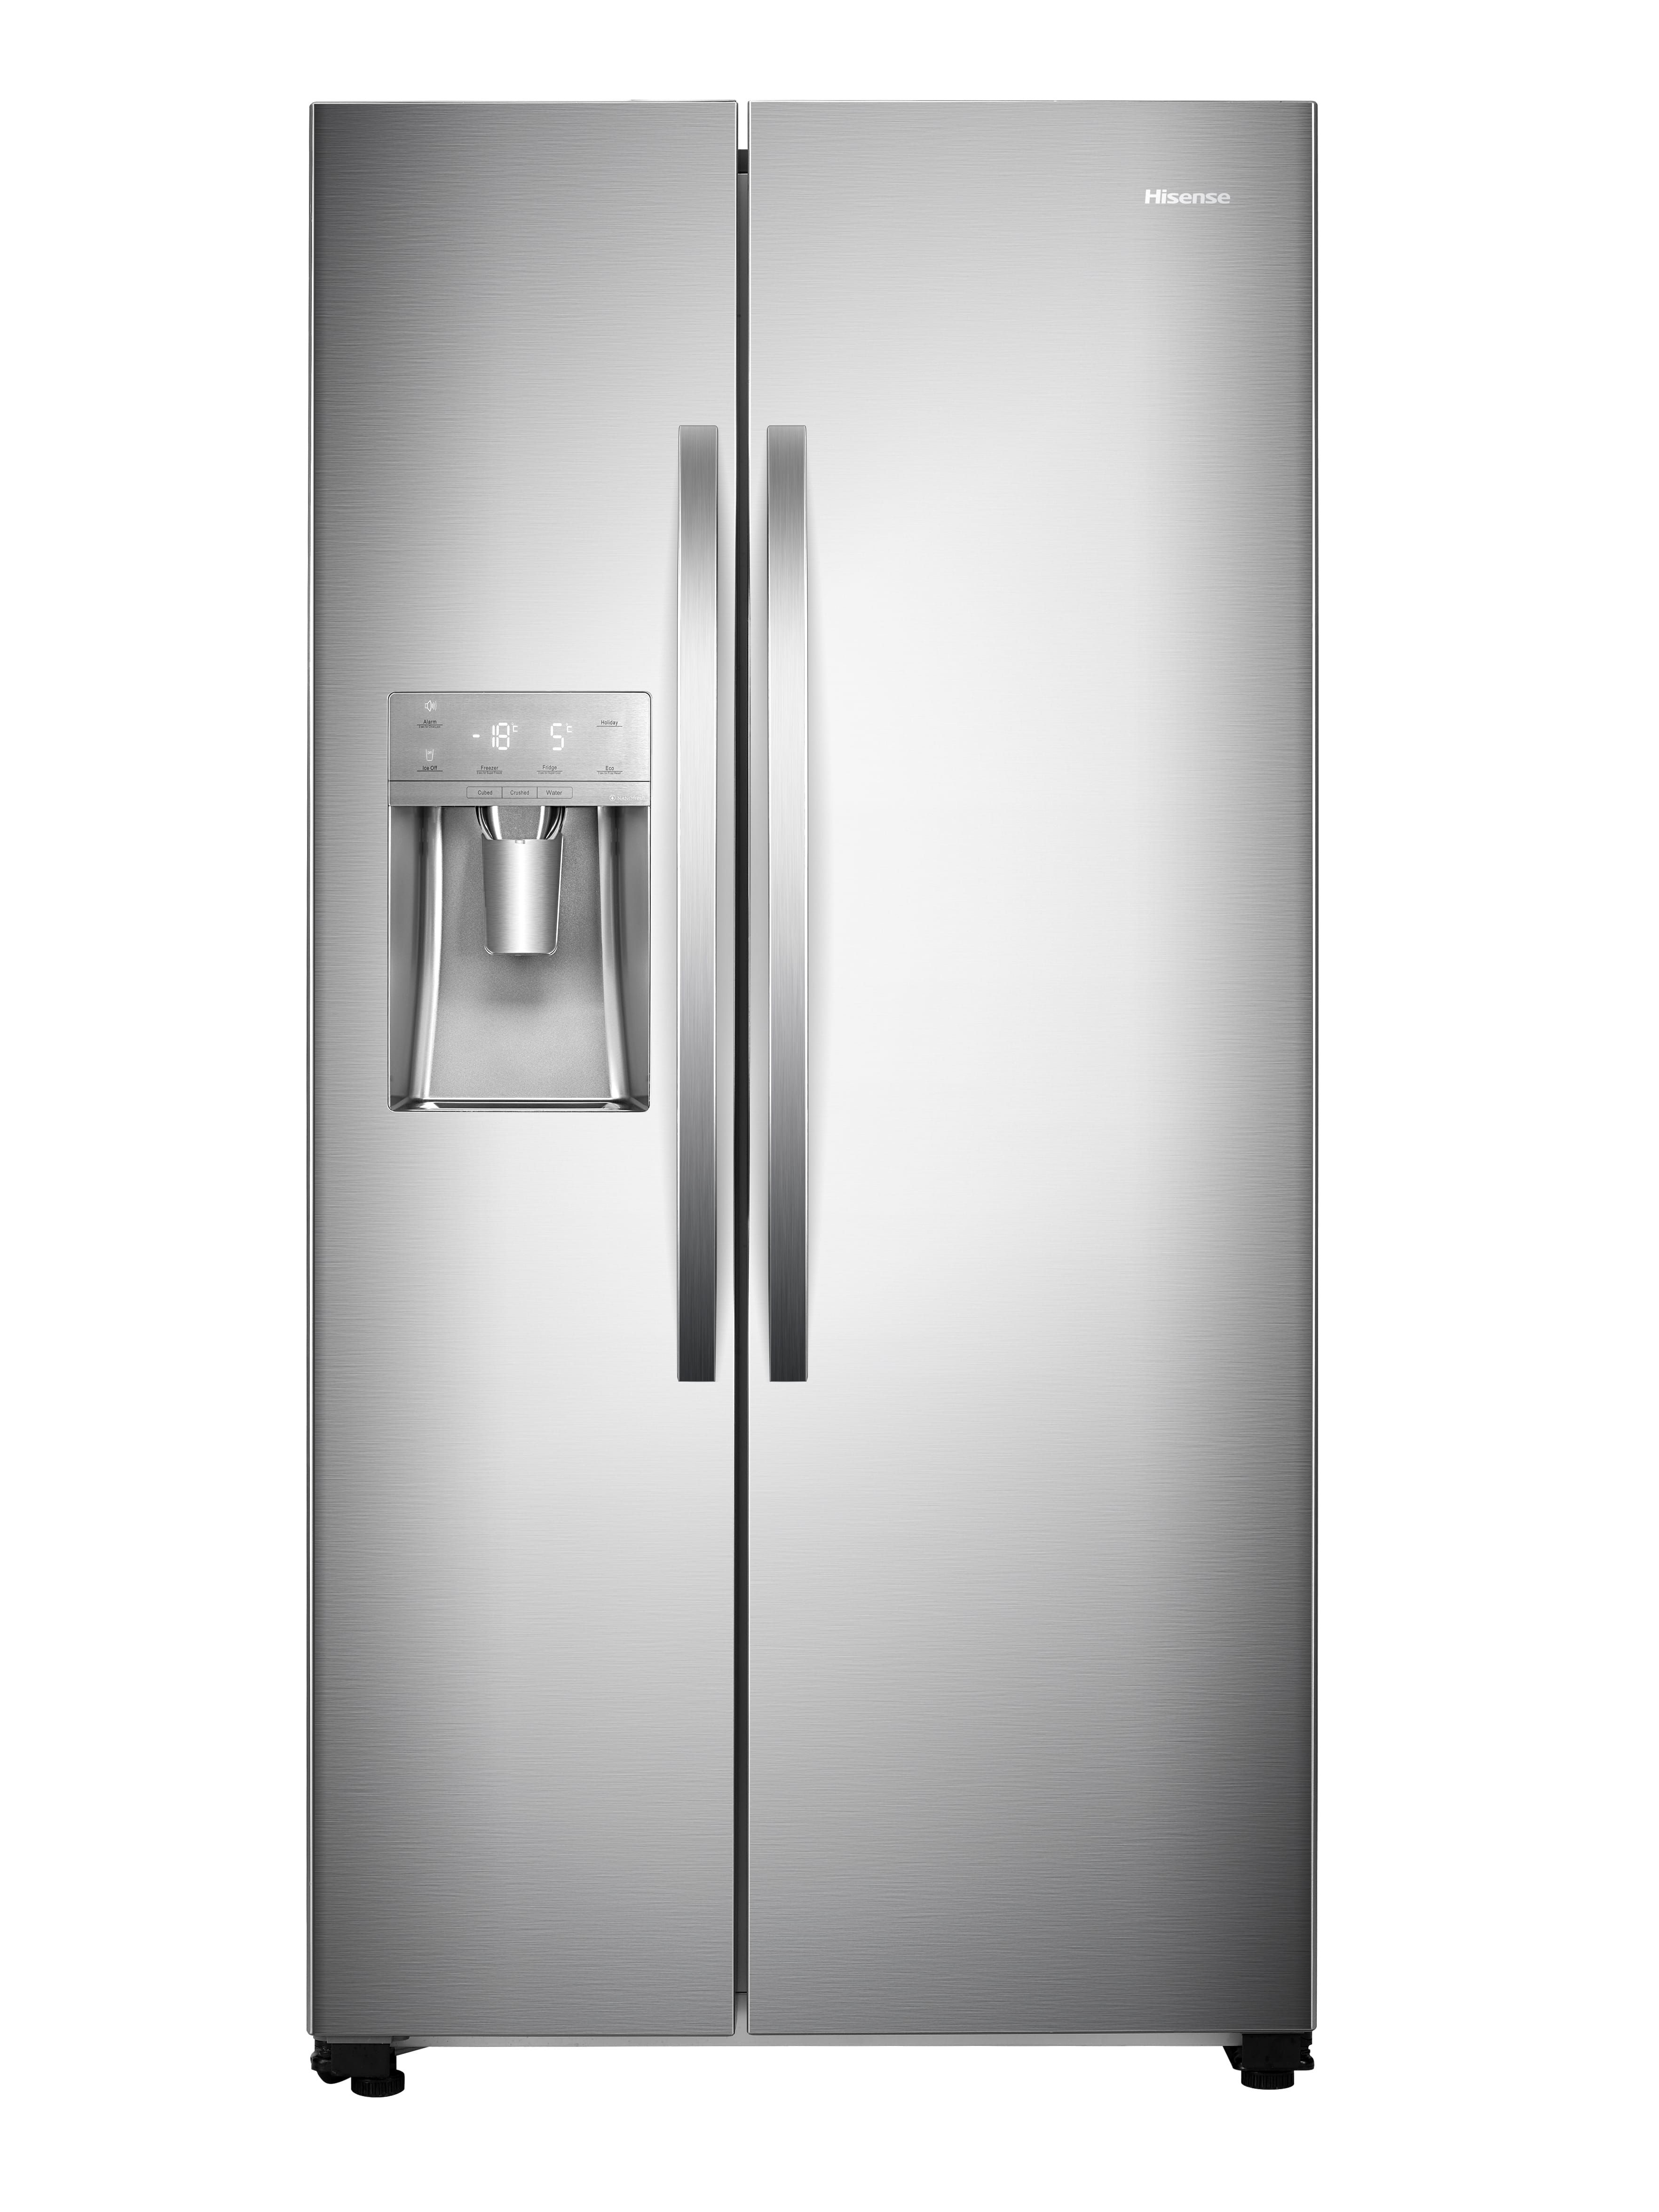 With The Hisense H700si Id Ice Maker Fridge Summer Is Going To Be A Breeze What Is Your Favourite Summer Drink Ht Tall Cabinet Storage Locker Storage Storage